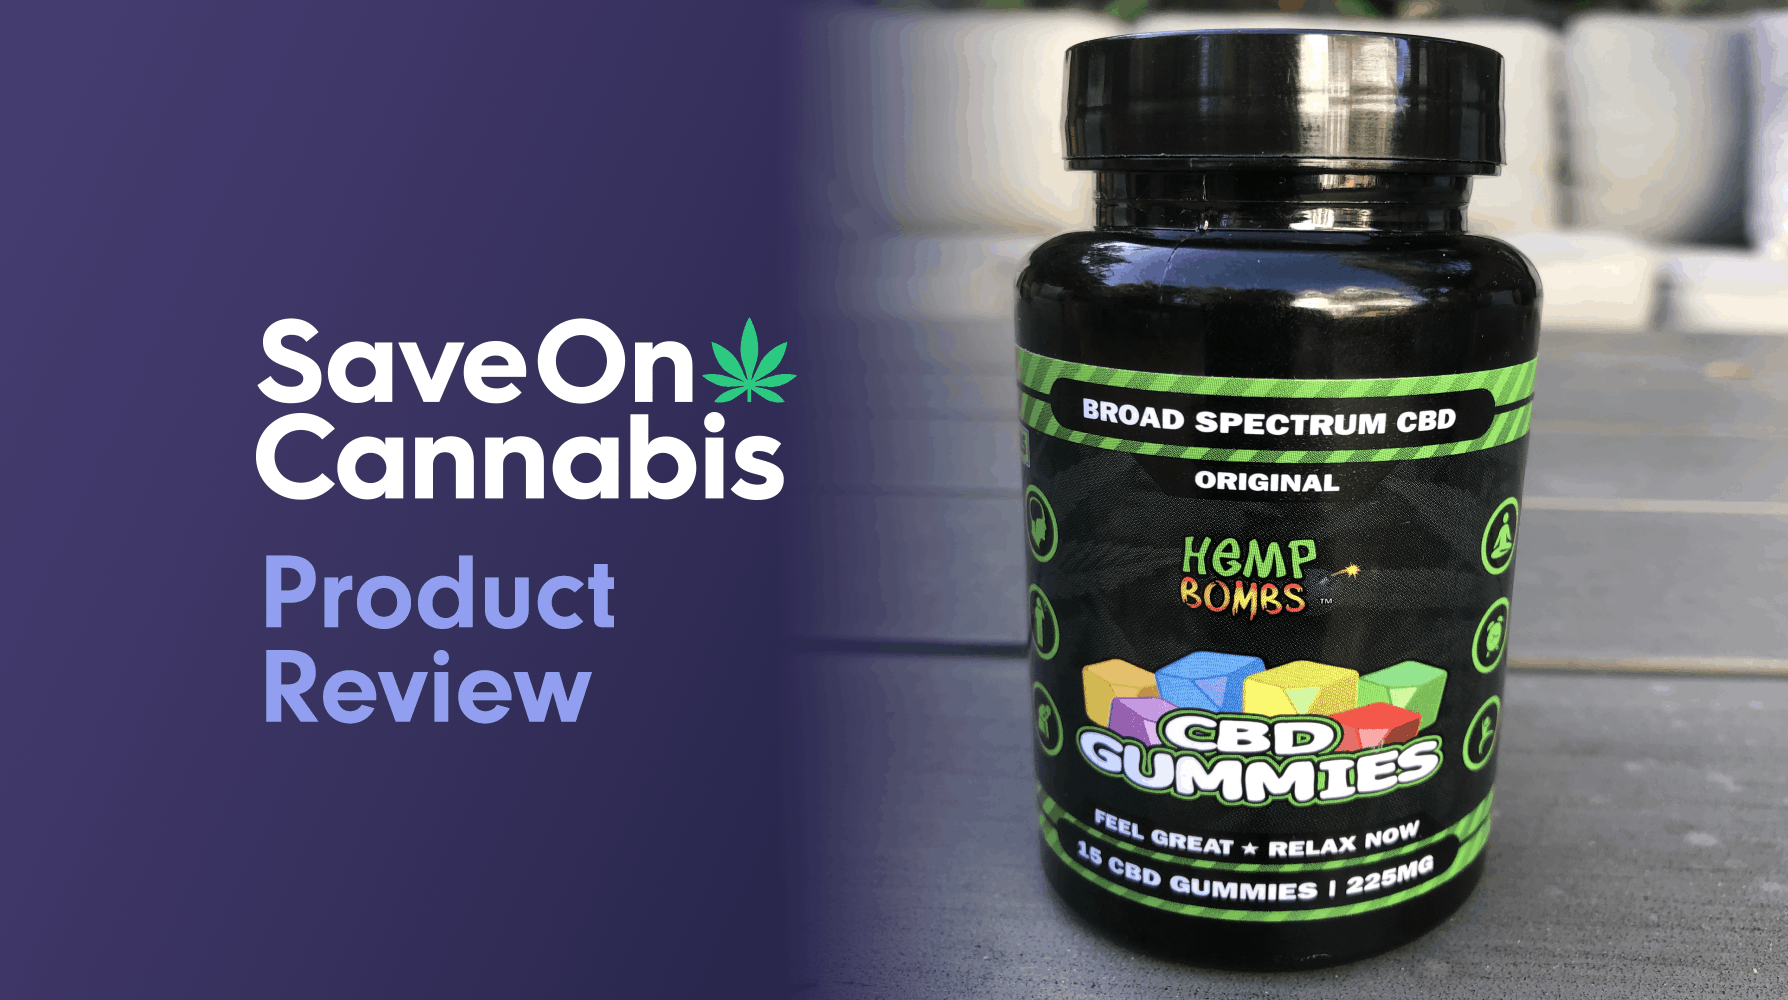 hemp bombs cbd gummies 15 mg save on cannabis review website